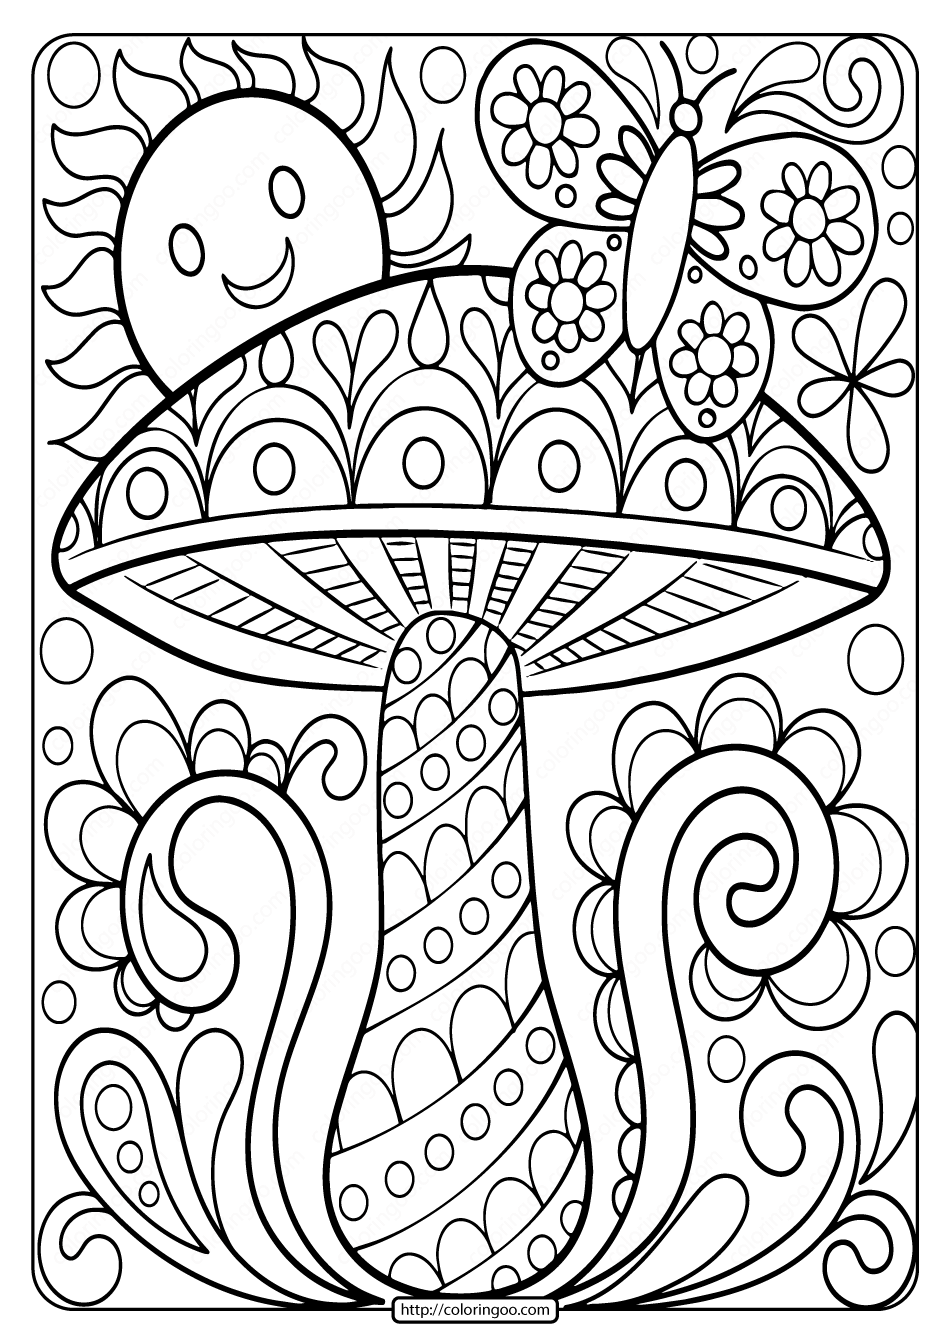 color in pages free printable mushroom adult coloring page in color pages